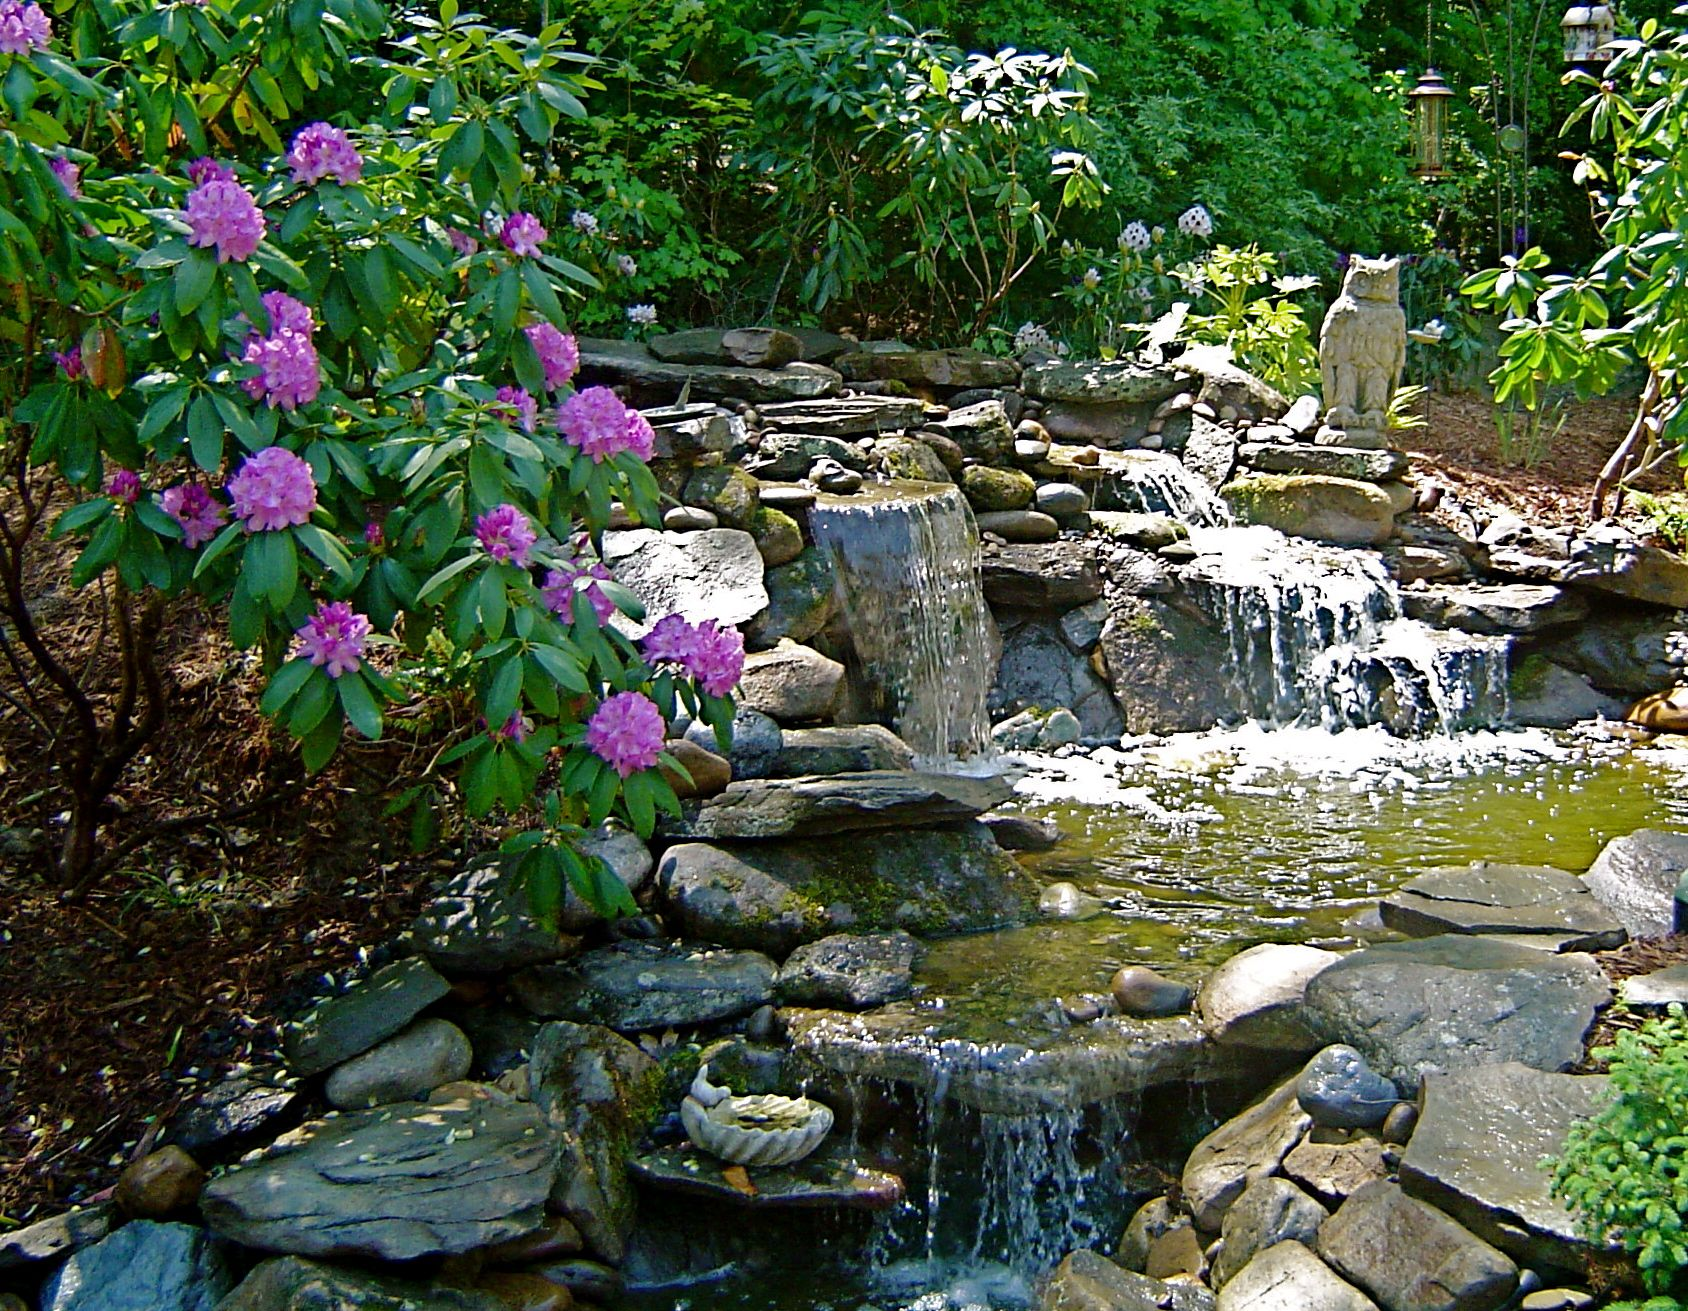 Professional Design Water Features Waterfalls Streams And More By All Natural Streams Landscaping Landscape Design Landscape Features Backyard Landscaping